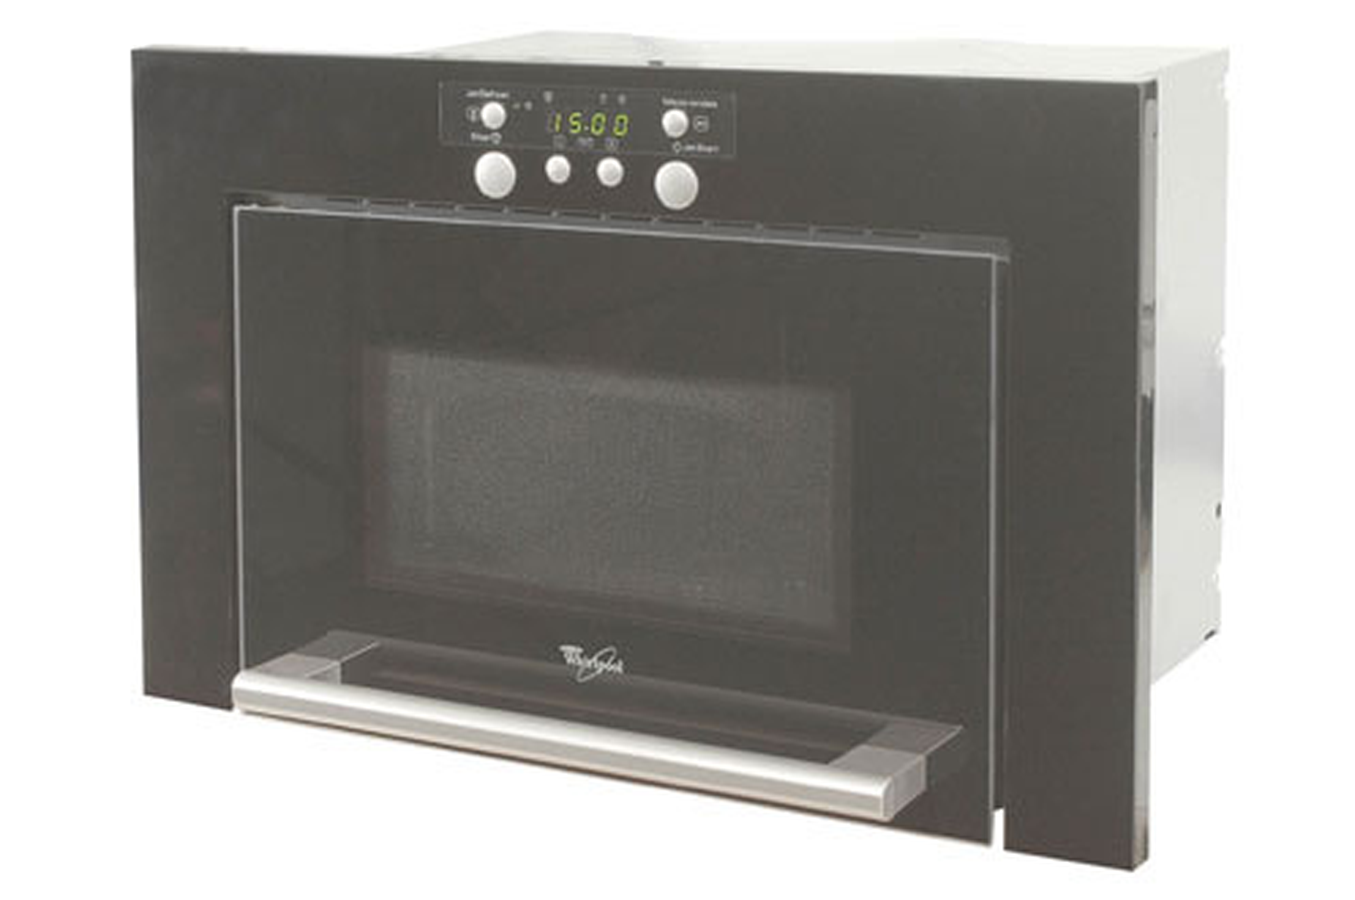 micro ondes encastrable whirlpool amw 466 nb noir. Black Bedroom Furniture Sets. Home Design Ideas